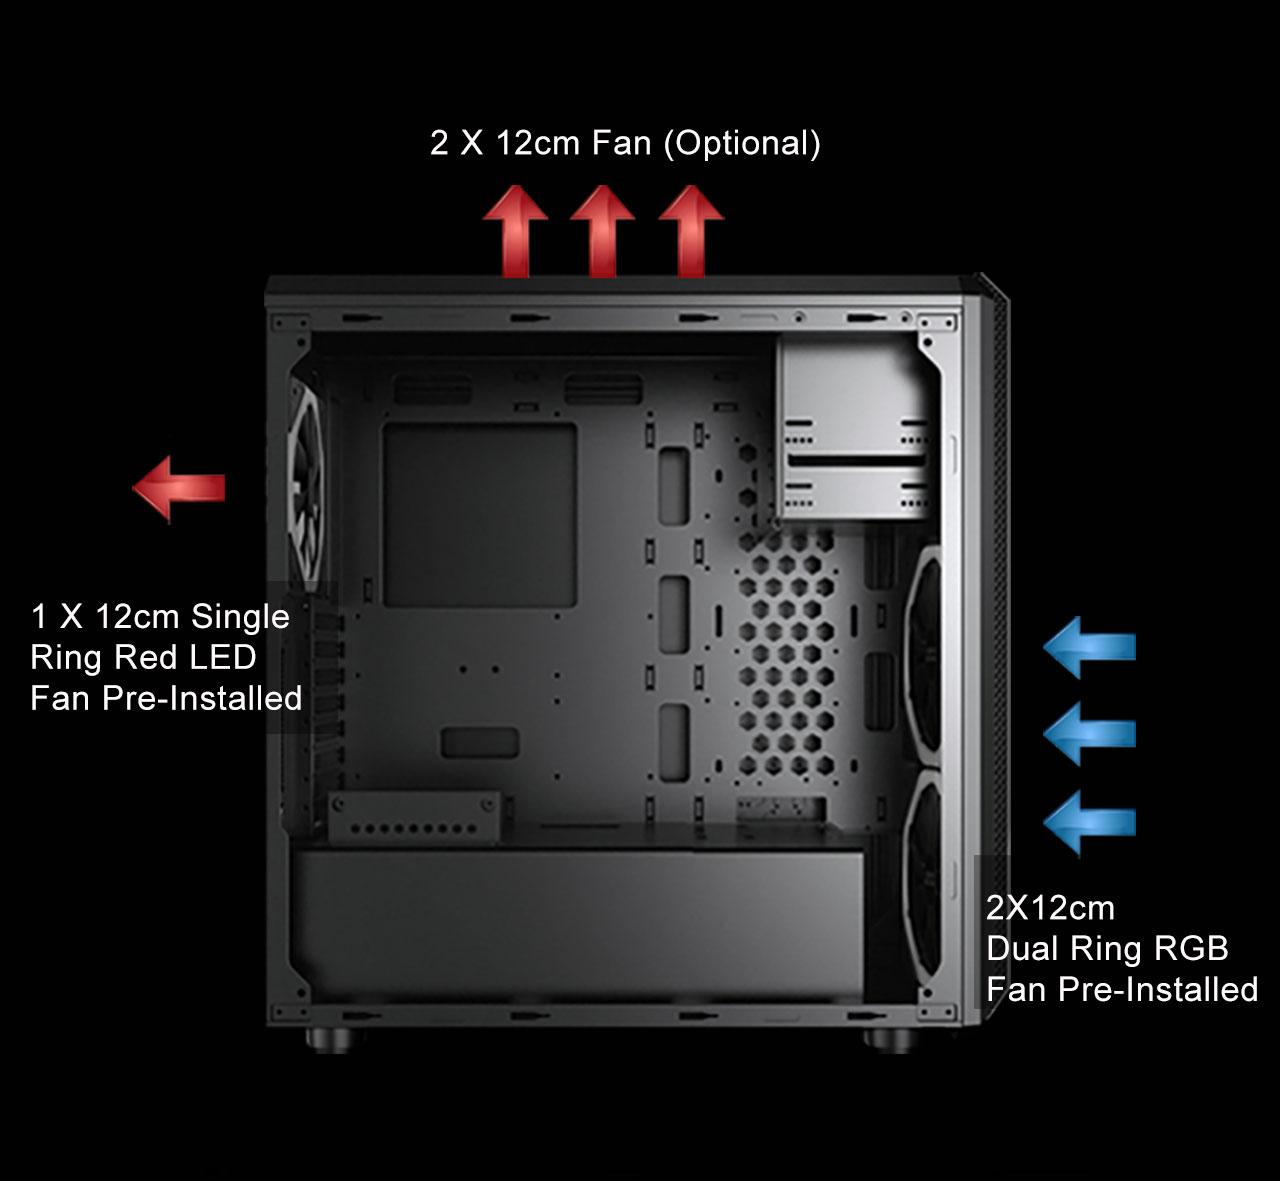 The case with its side panel removed and graphics showing where fans can be installed and the effect they have on airflow